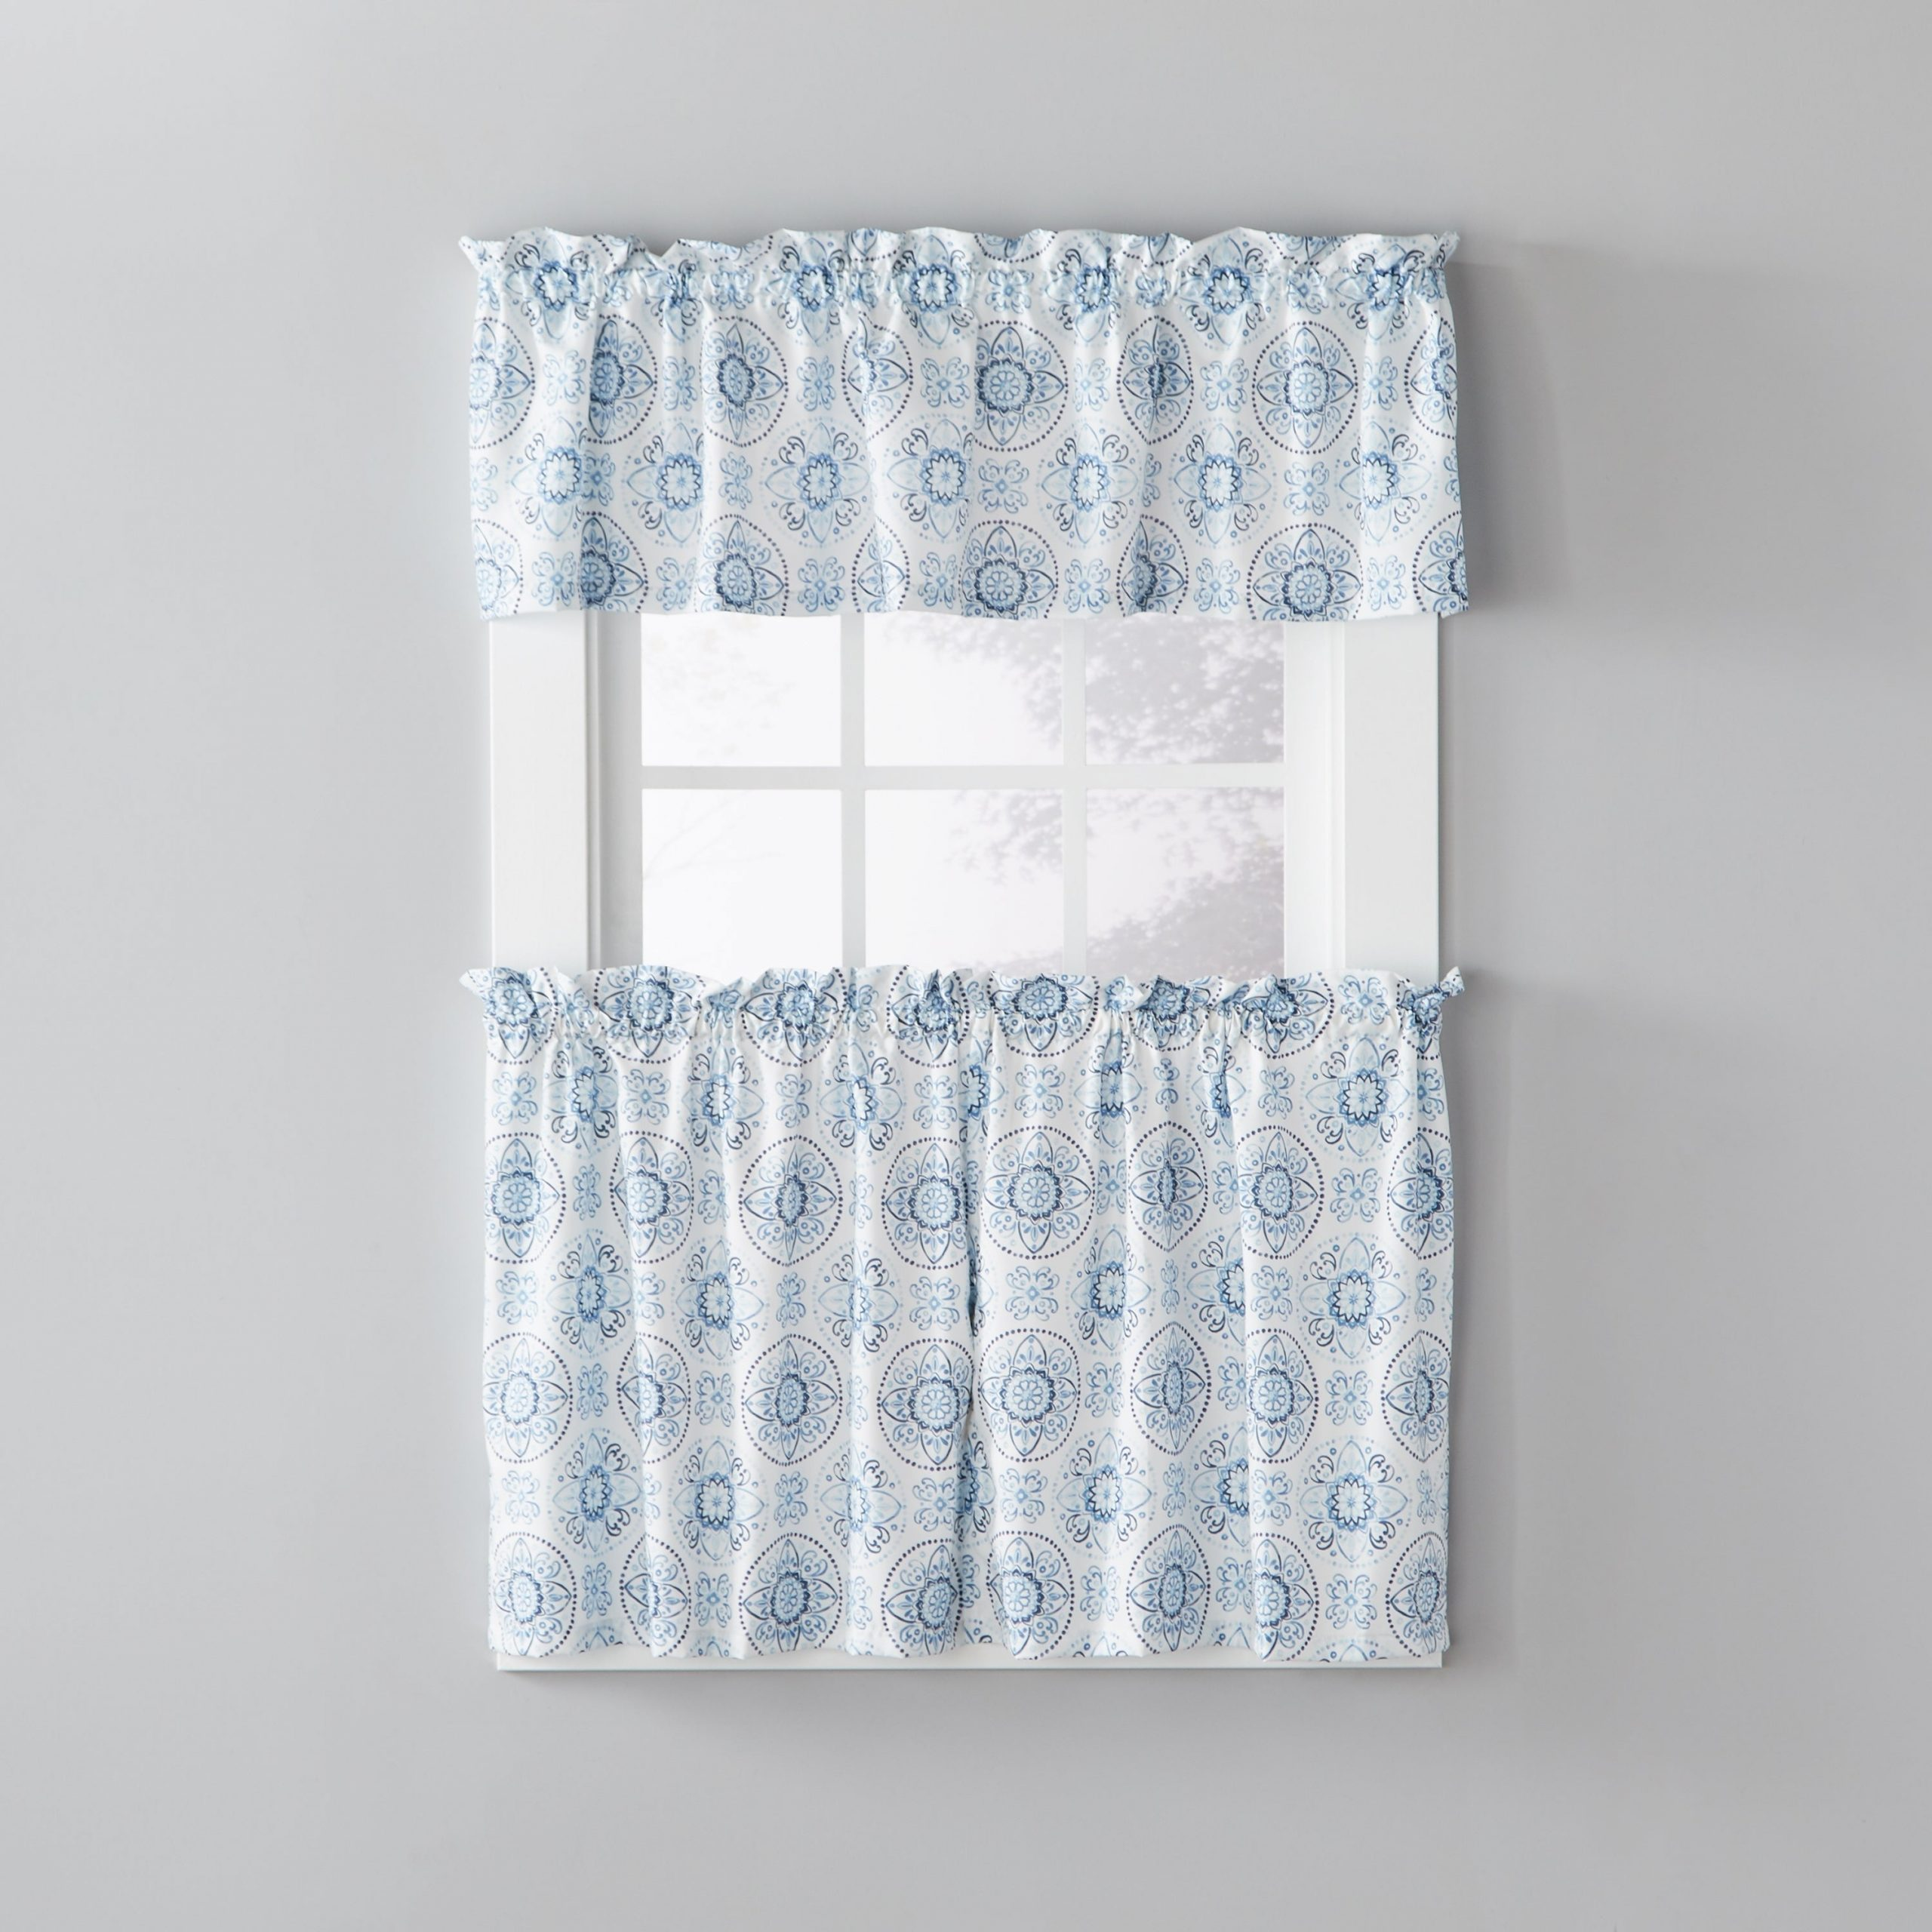 Skl Home Kali 36 Inch Tier Pair With Class Blue Cotton Blend Macrame Trimmed Decorative Window Curtains (View 8 of 20)